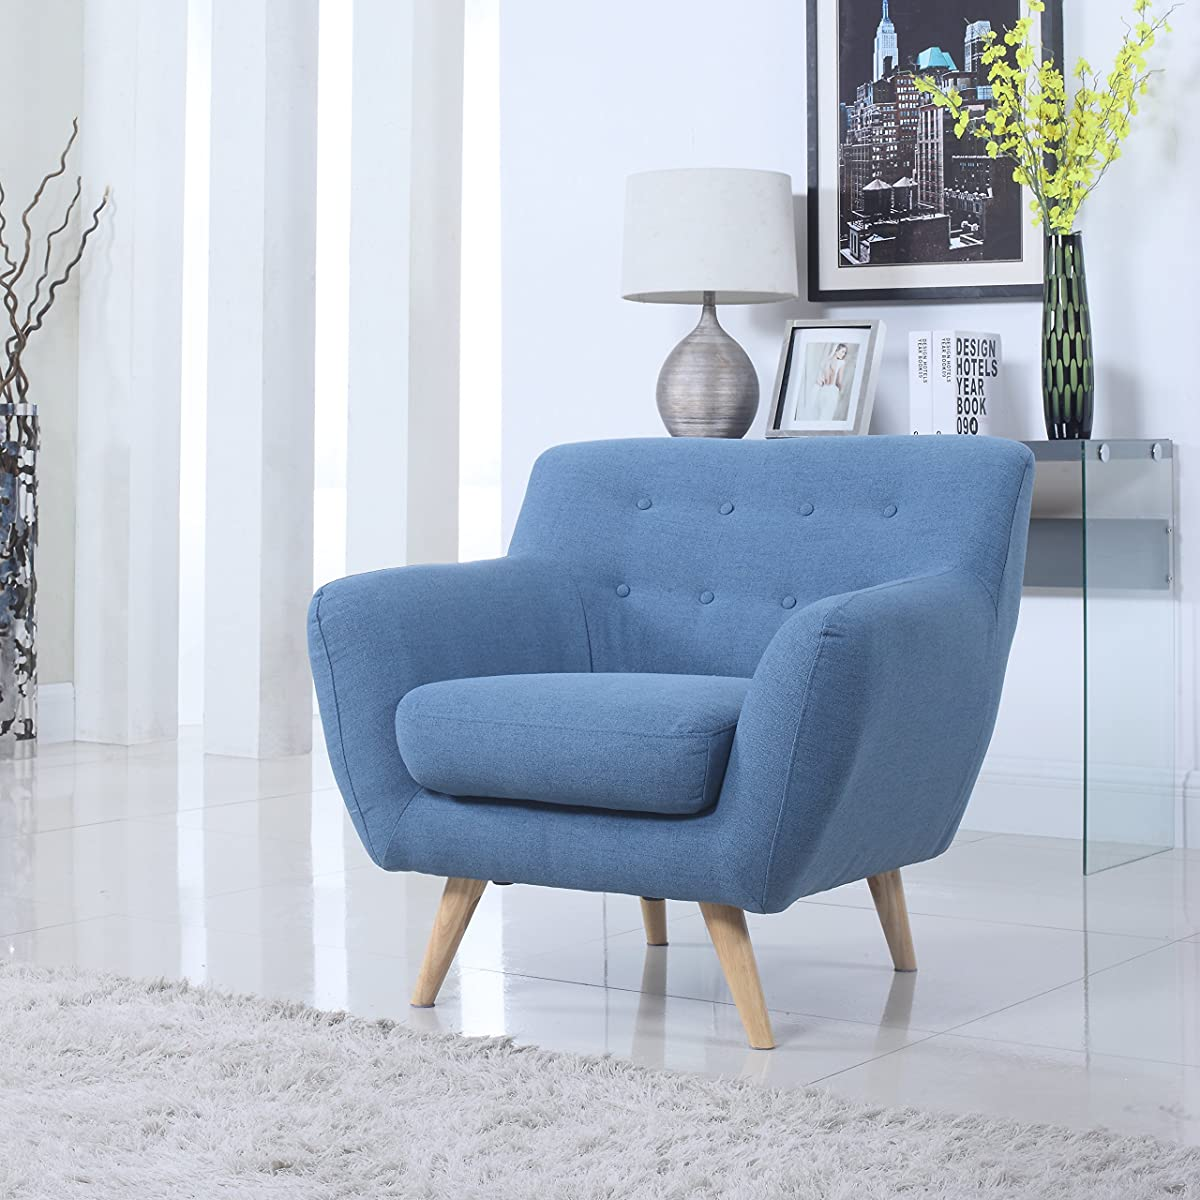 Mid Century Modern Tufted Button Living Room Accent Chair (Blue)